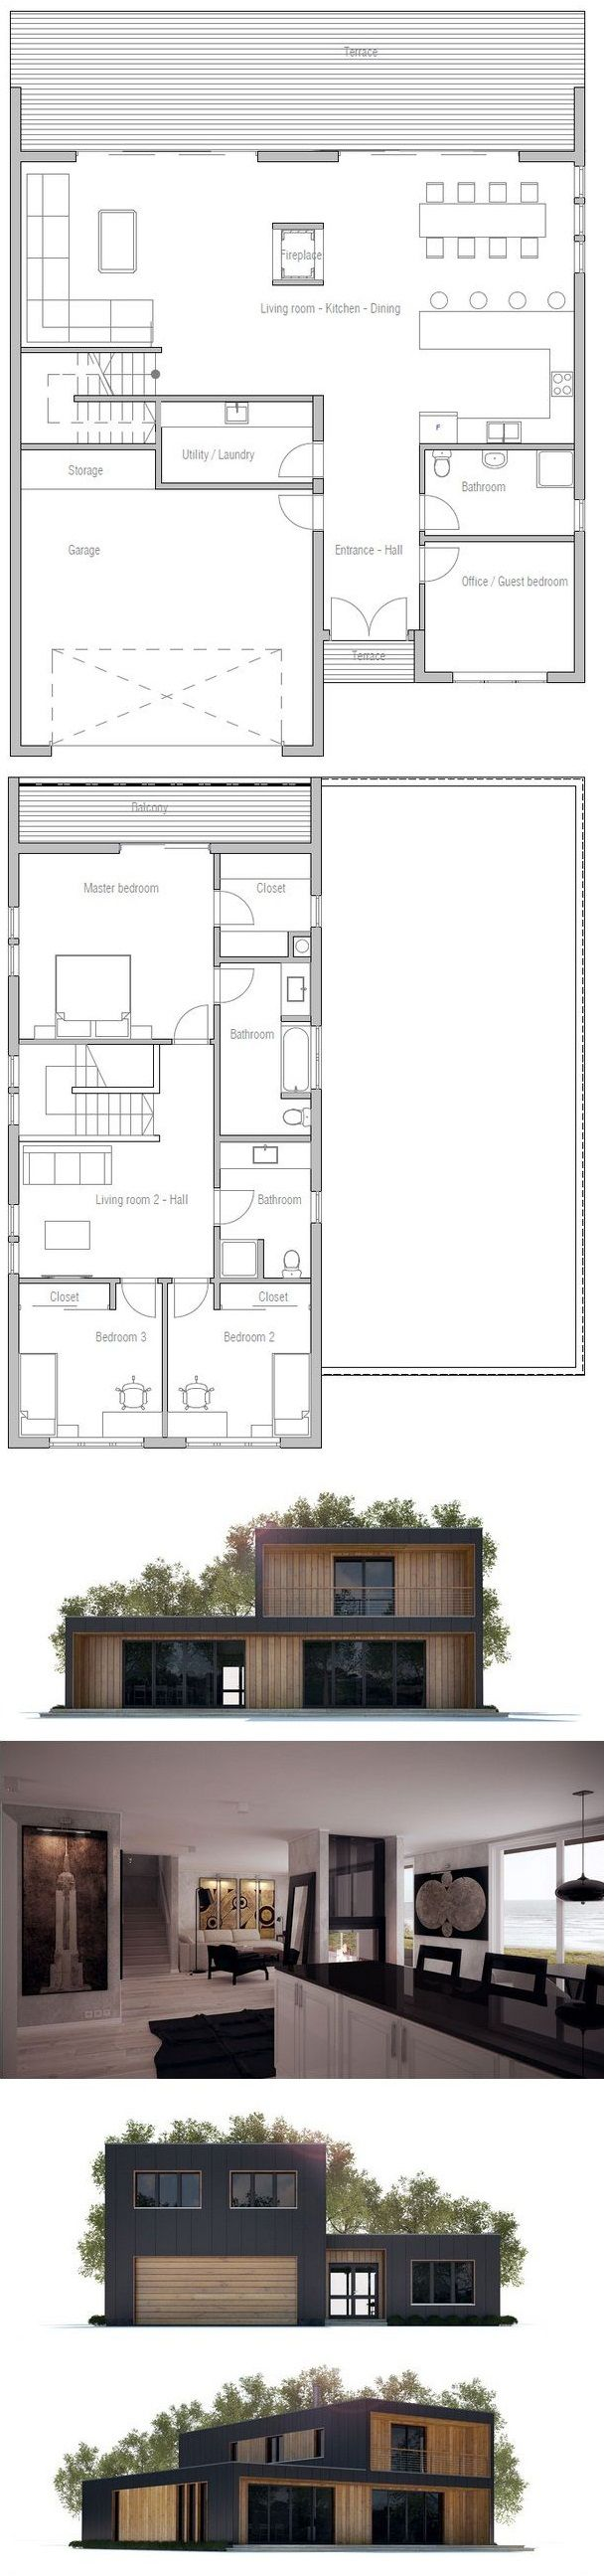 Floor Plan - love the 2 way fp